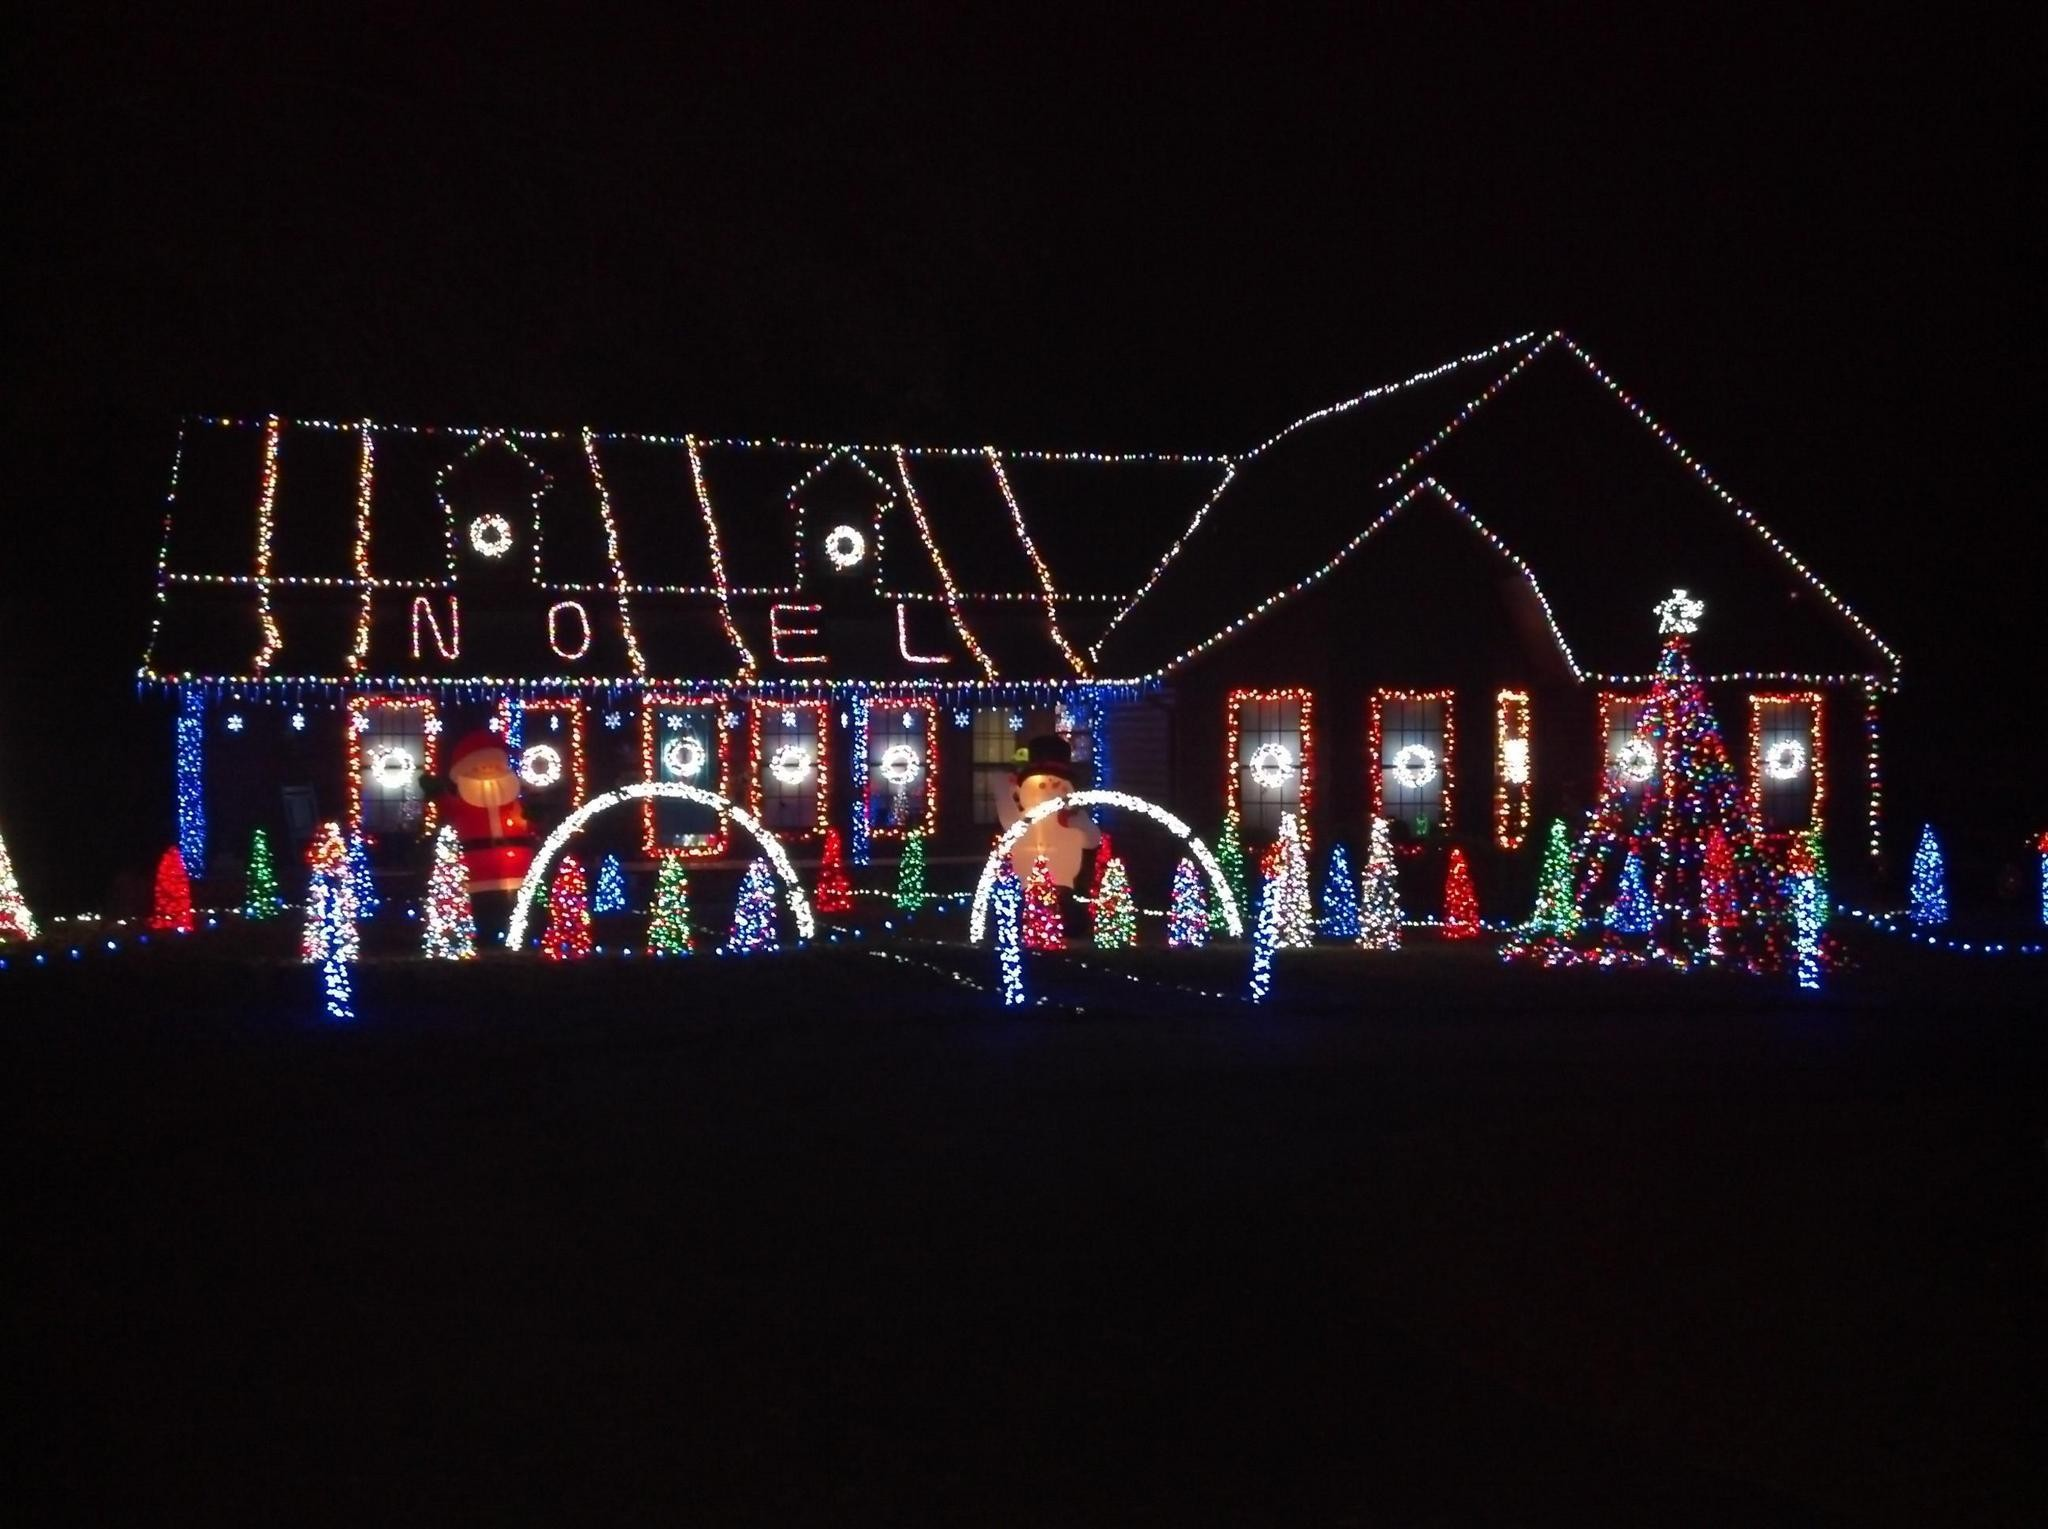 Christmas Lights Hoover Al 2021 Hoover Home Wins The Prize For The Merriest Holiday Lights Display In Alabama Photo Gallery Al Com